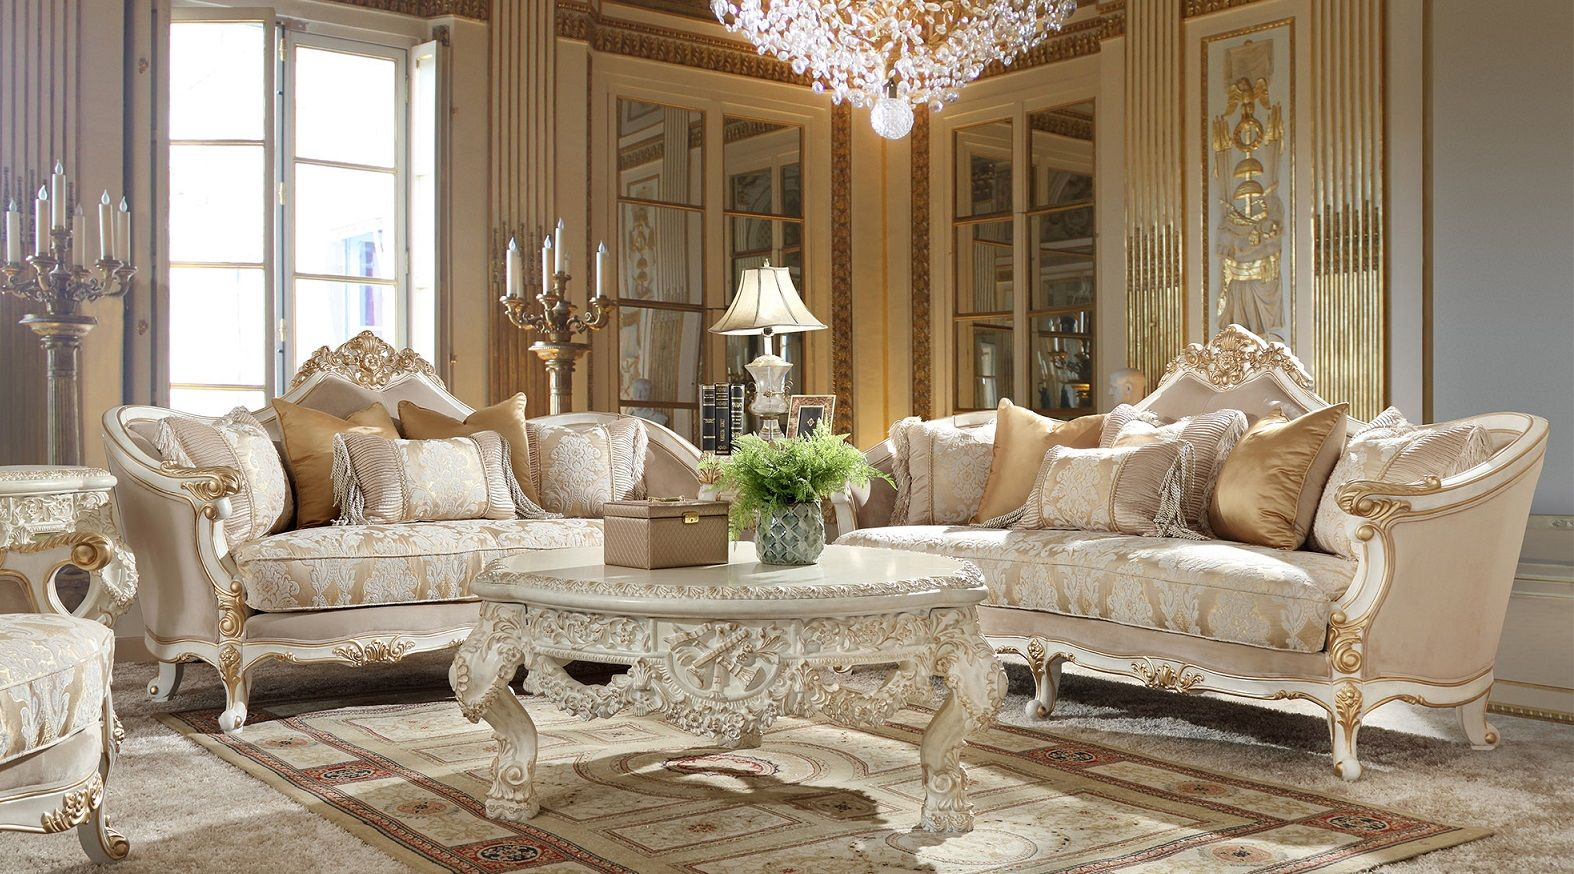 Victorian Living Room 641 Victorian Furniture Victorian Living Room Furniture Victorian Living Room Living Room Sets